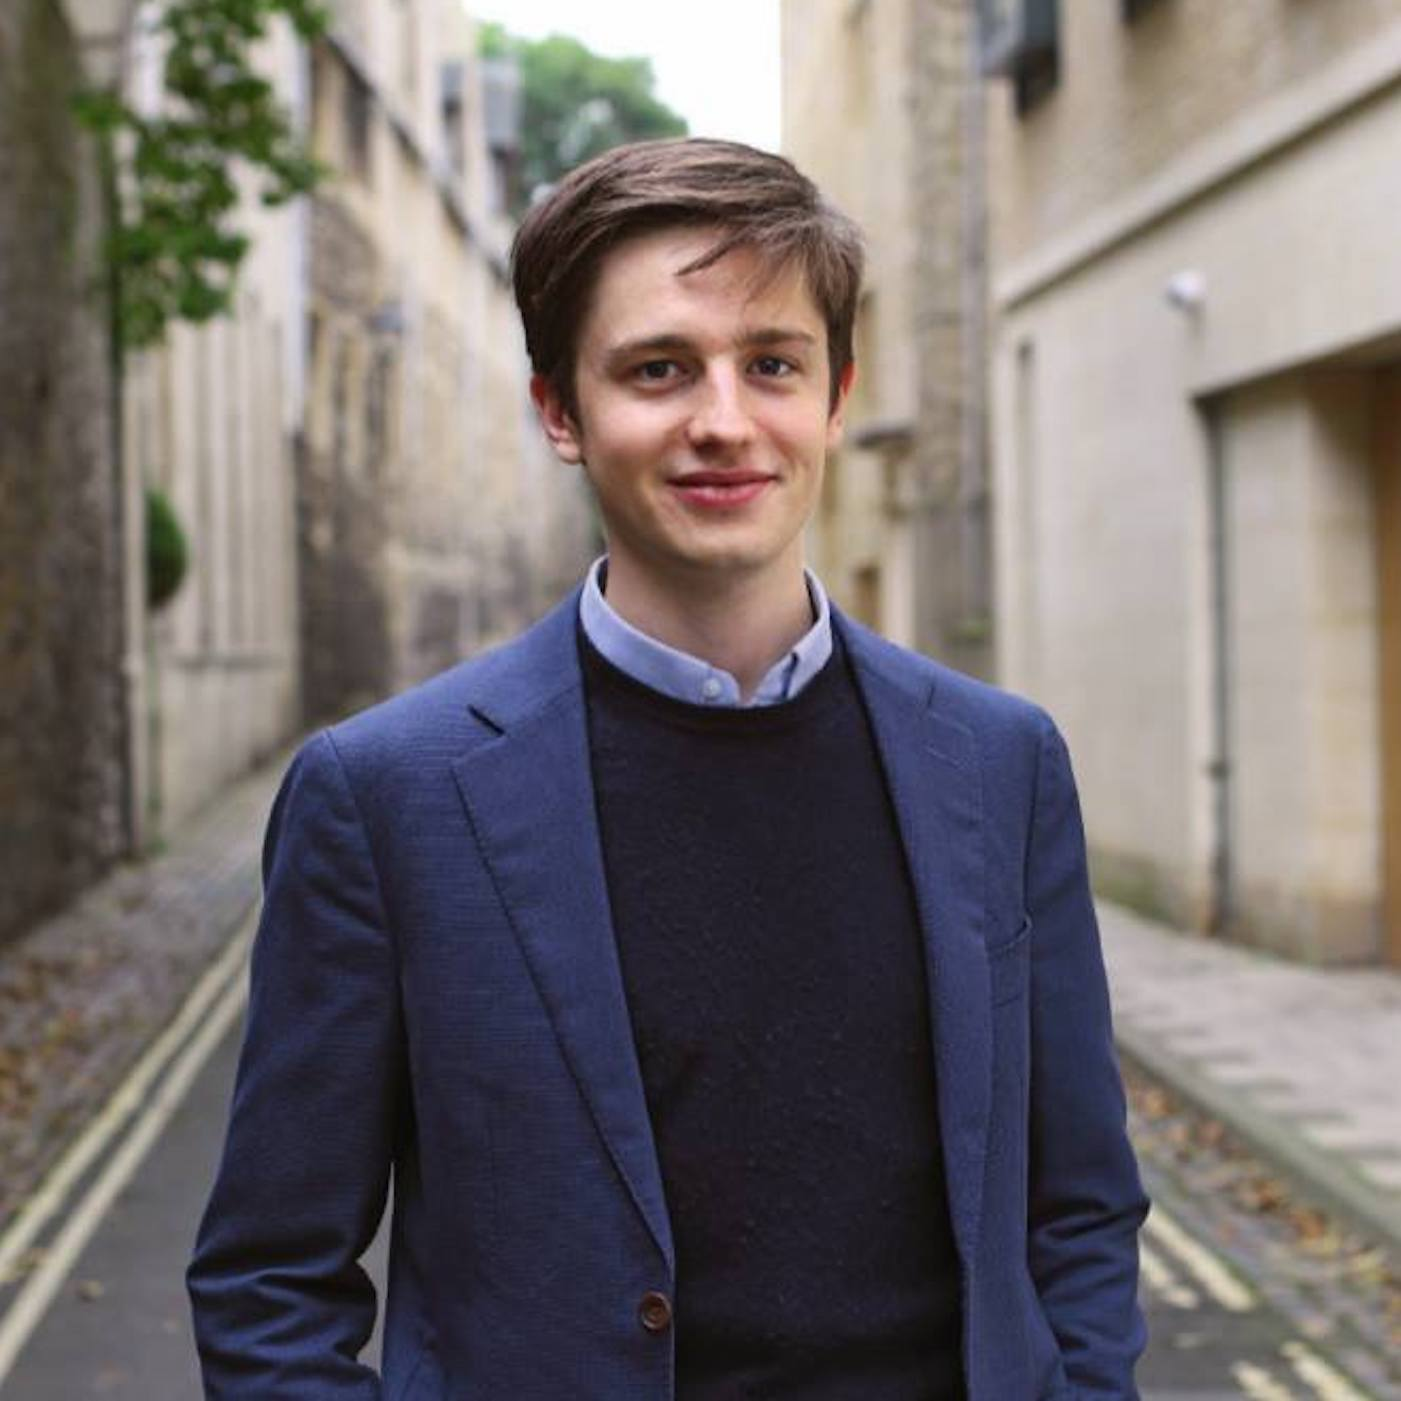 Benjamin Todd on varieties of longtermism and things 80,000 Hours might be getting wrong (80k team chat #2)